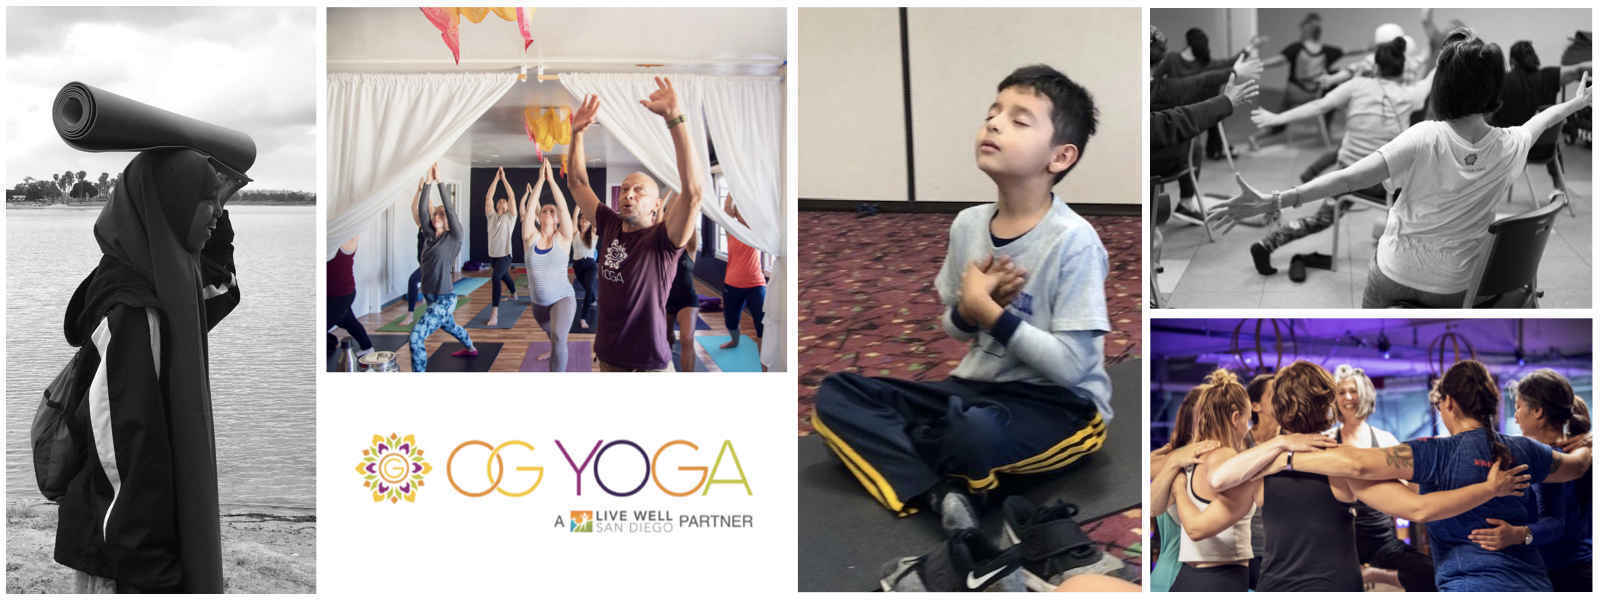 Help Provide Yoga and Meditation to Those in Need image